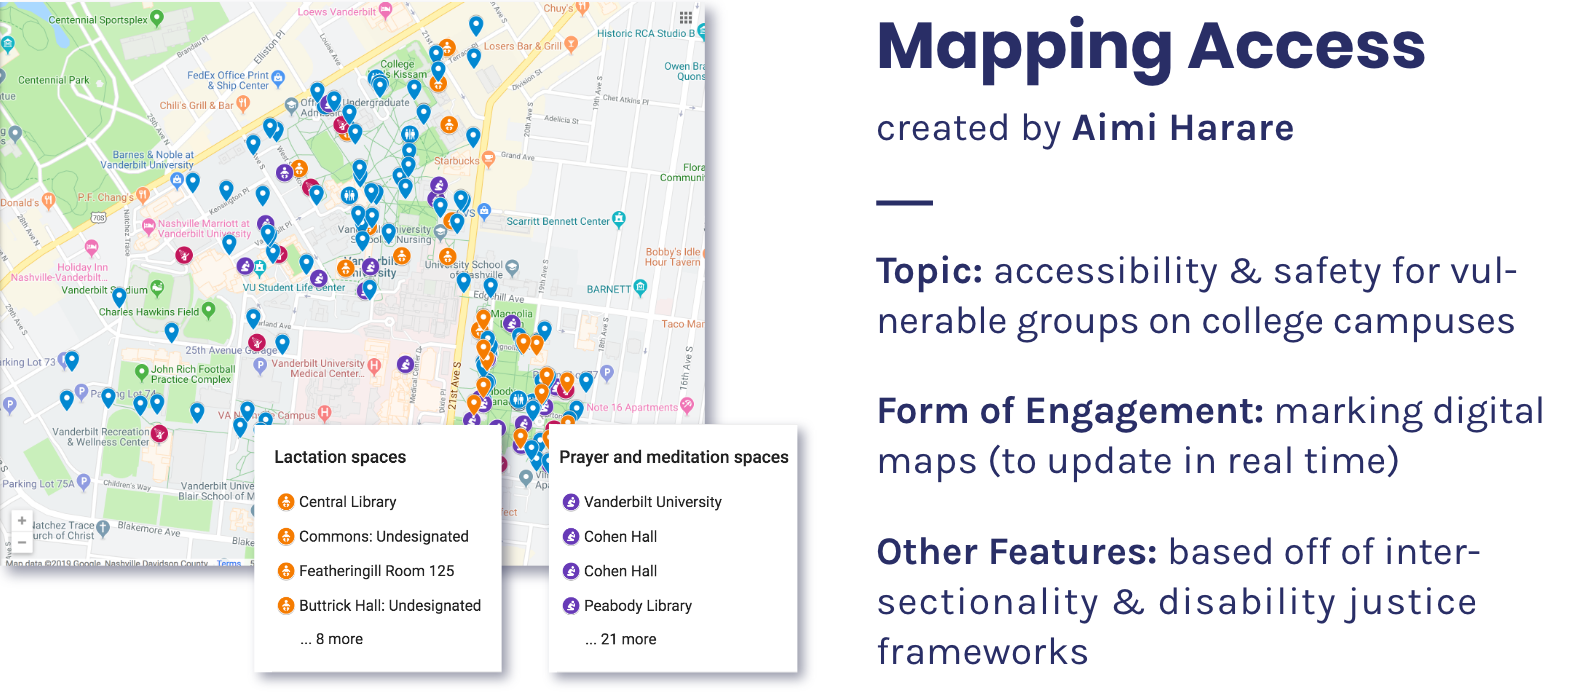 https://www.mapping-access.com/mapping-access-methodology